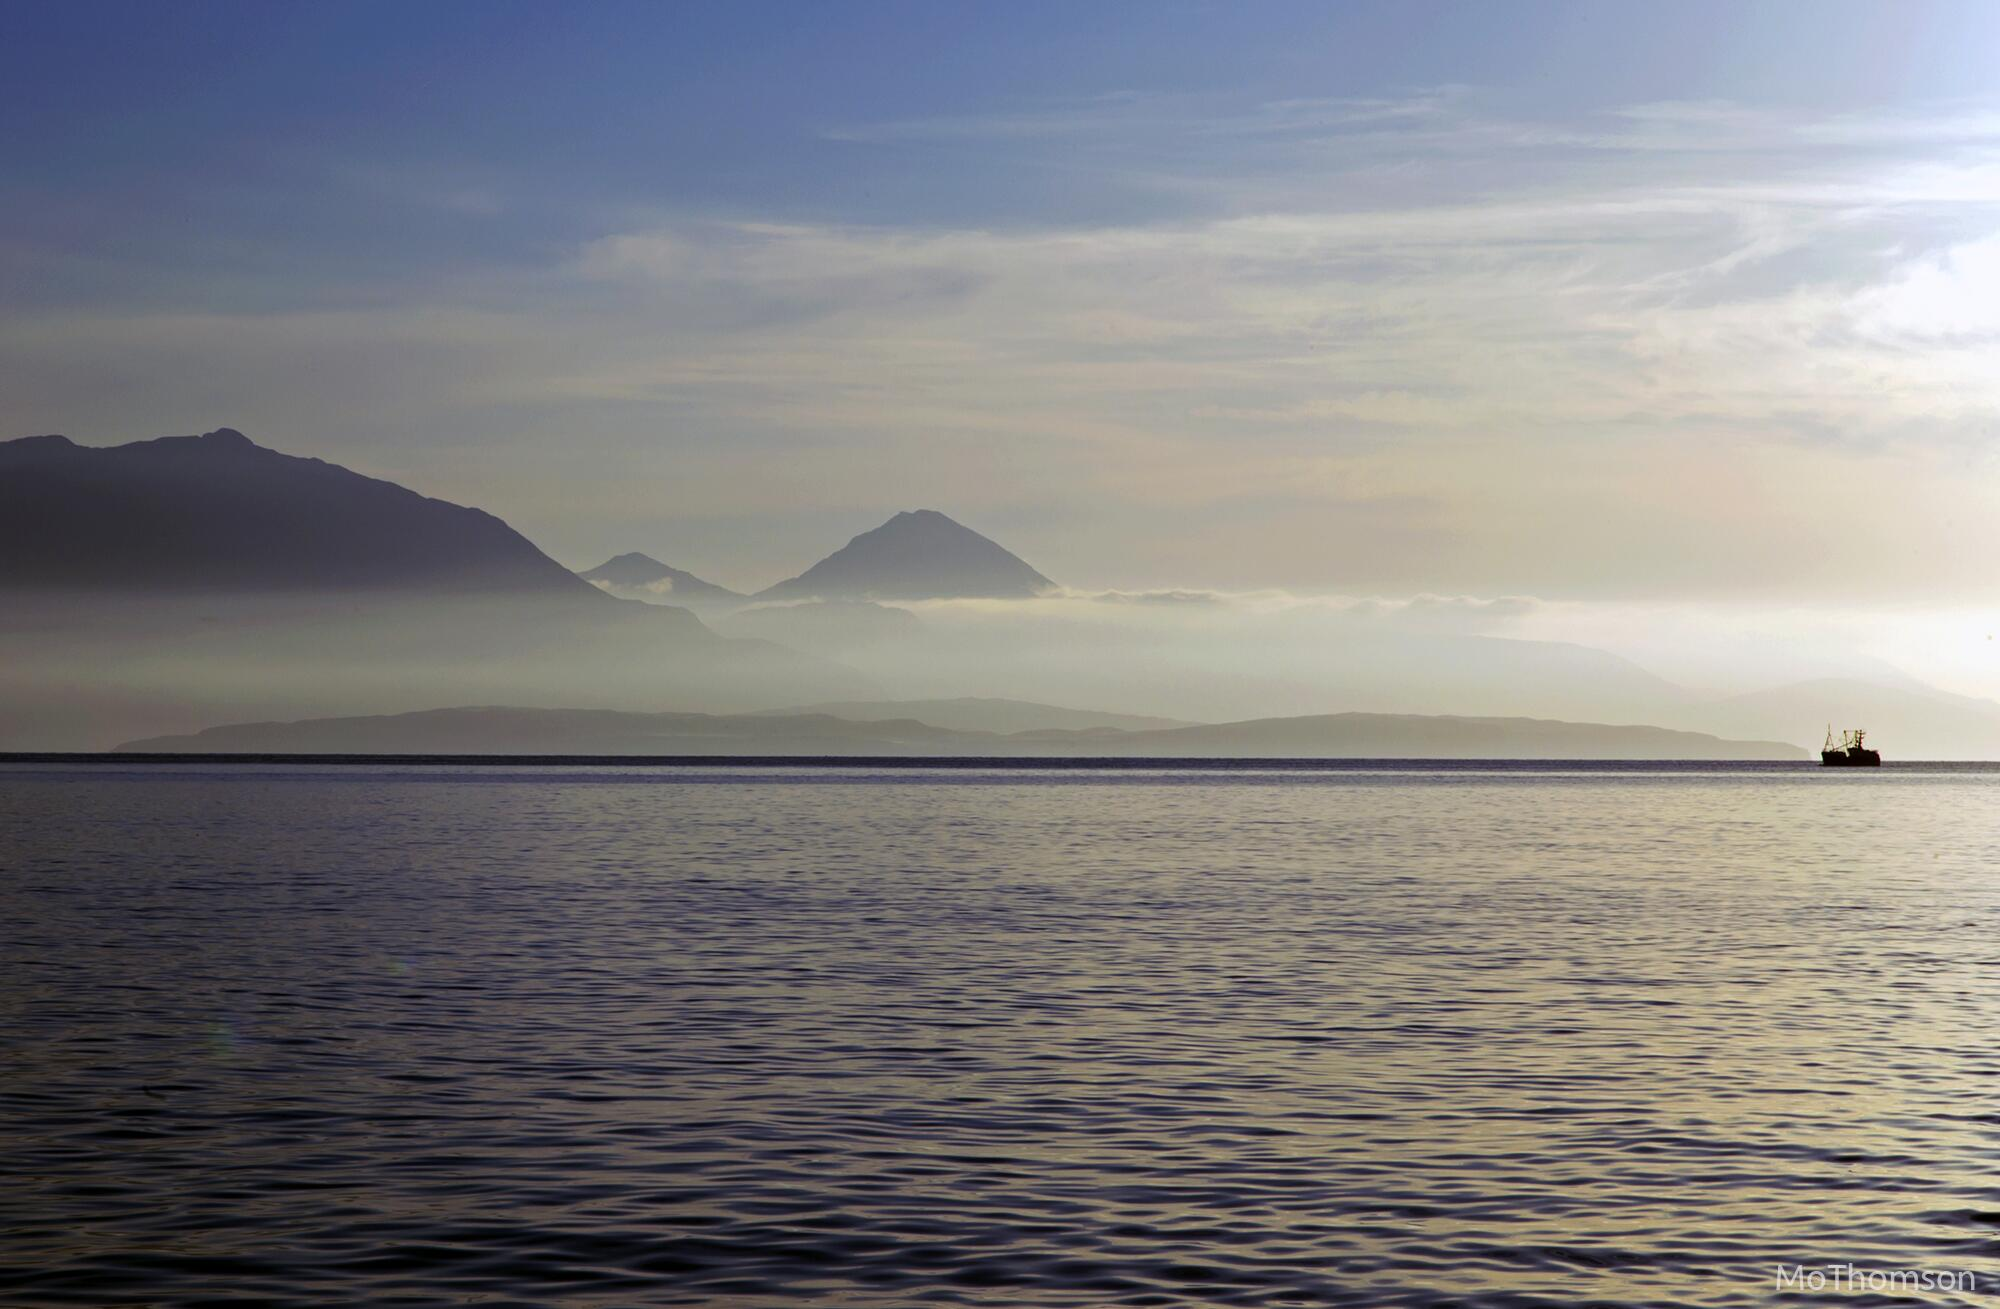 RT @MoThomson: A wee fishing boat off the coast of a misty Skye, just after sunrise http://t.co/HqGIOt4FdV